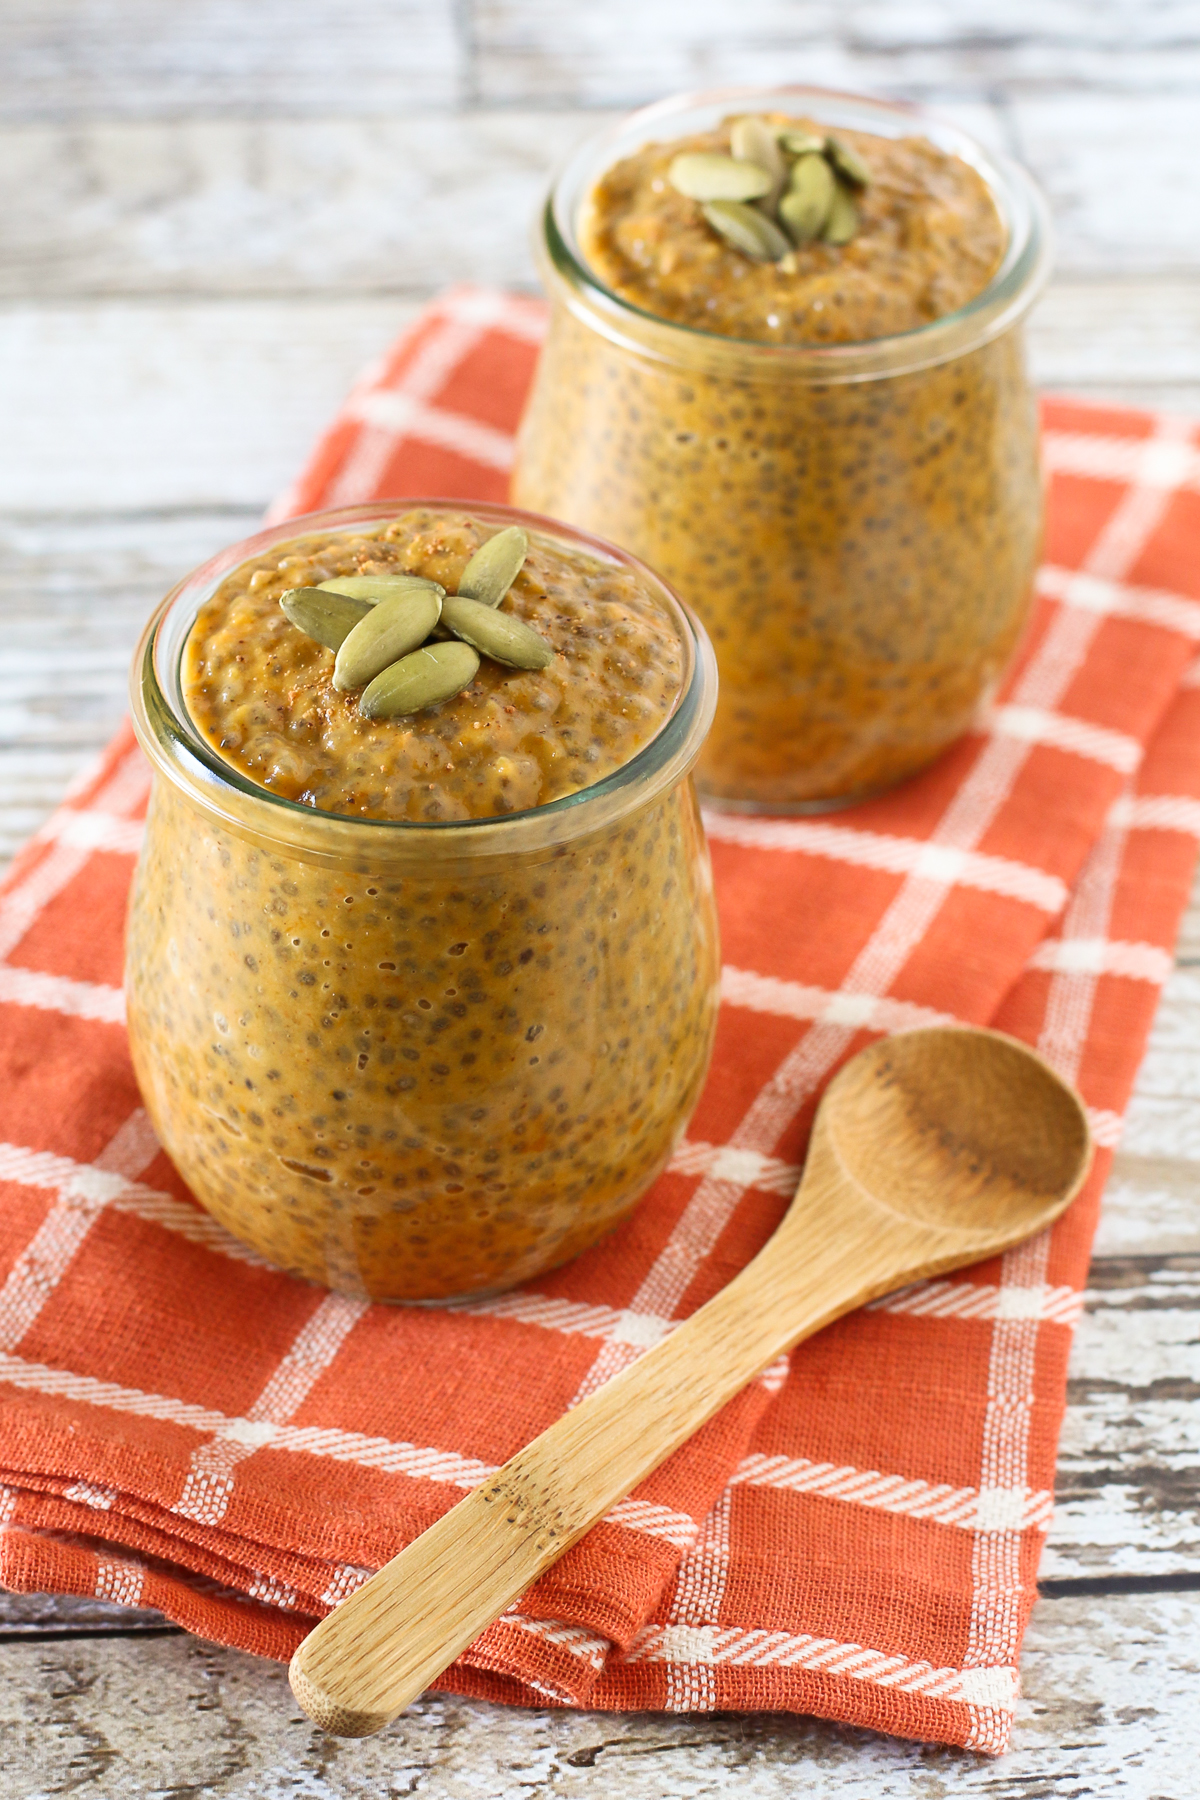 Dairy Free Pumpkin Pie Chia Pudding. A healthy fall dessert, with the classic flavors of pumpkin pie!